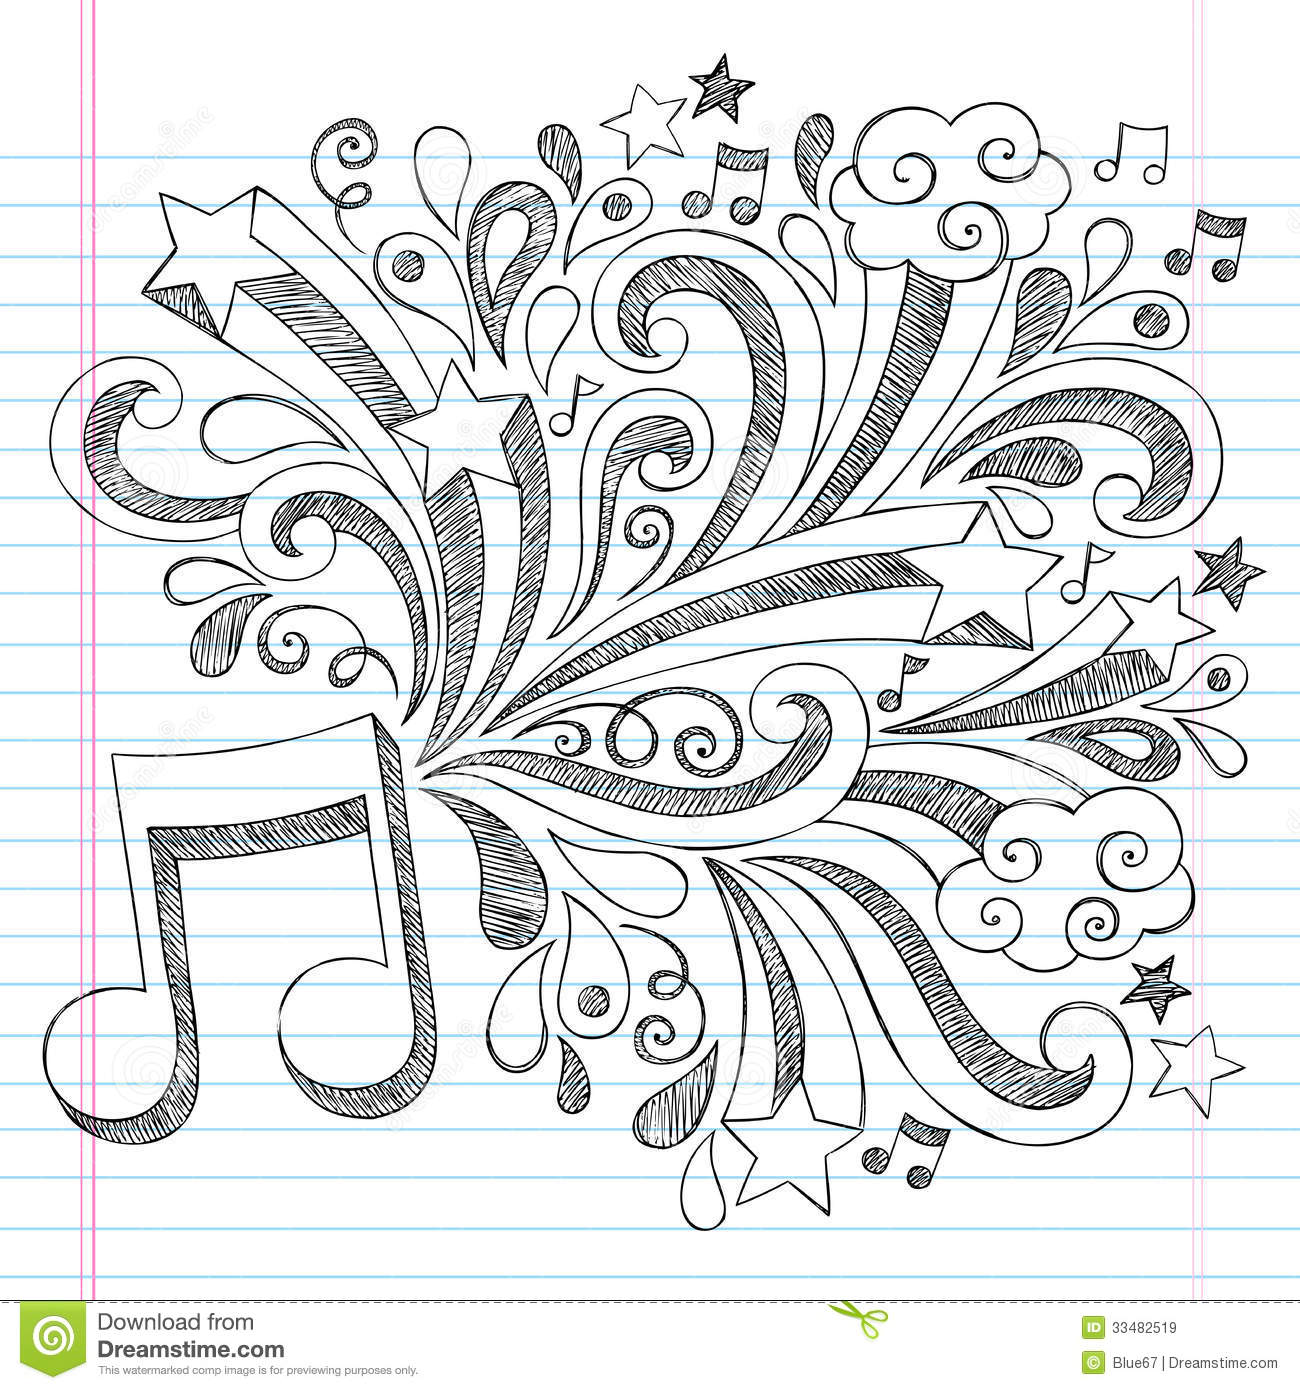 Drawn music easy Music  on Google Search